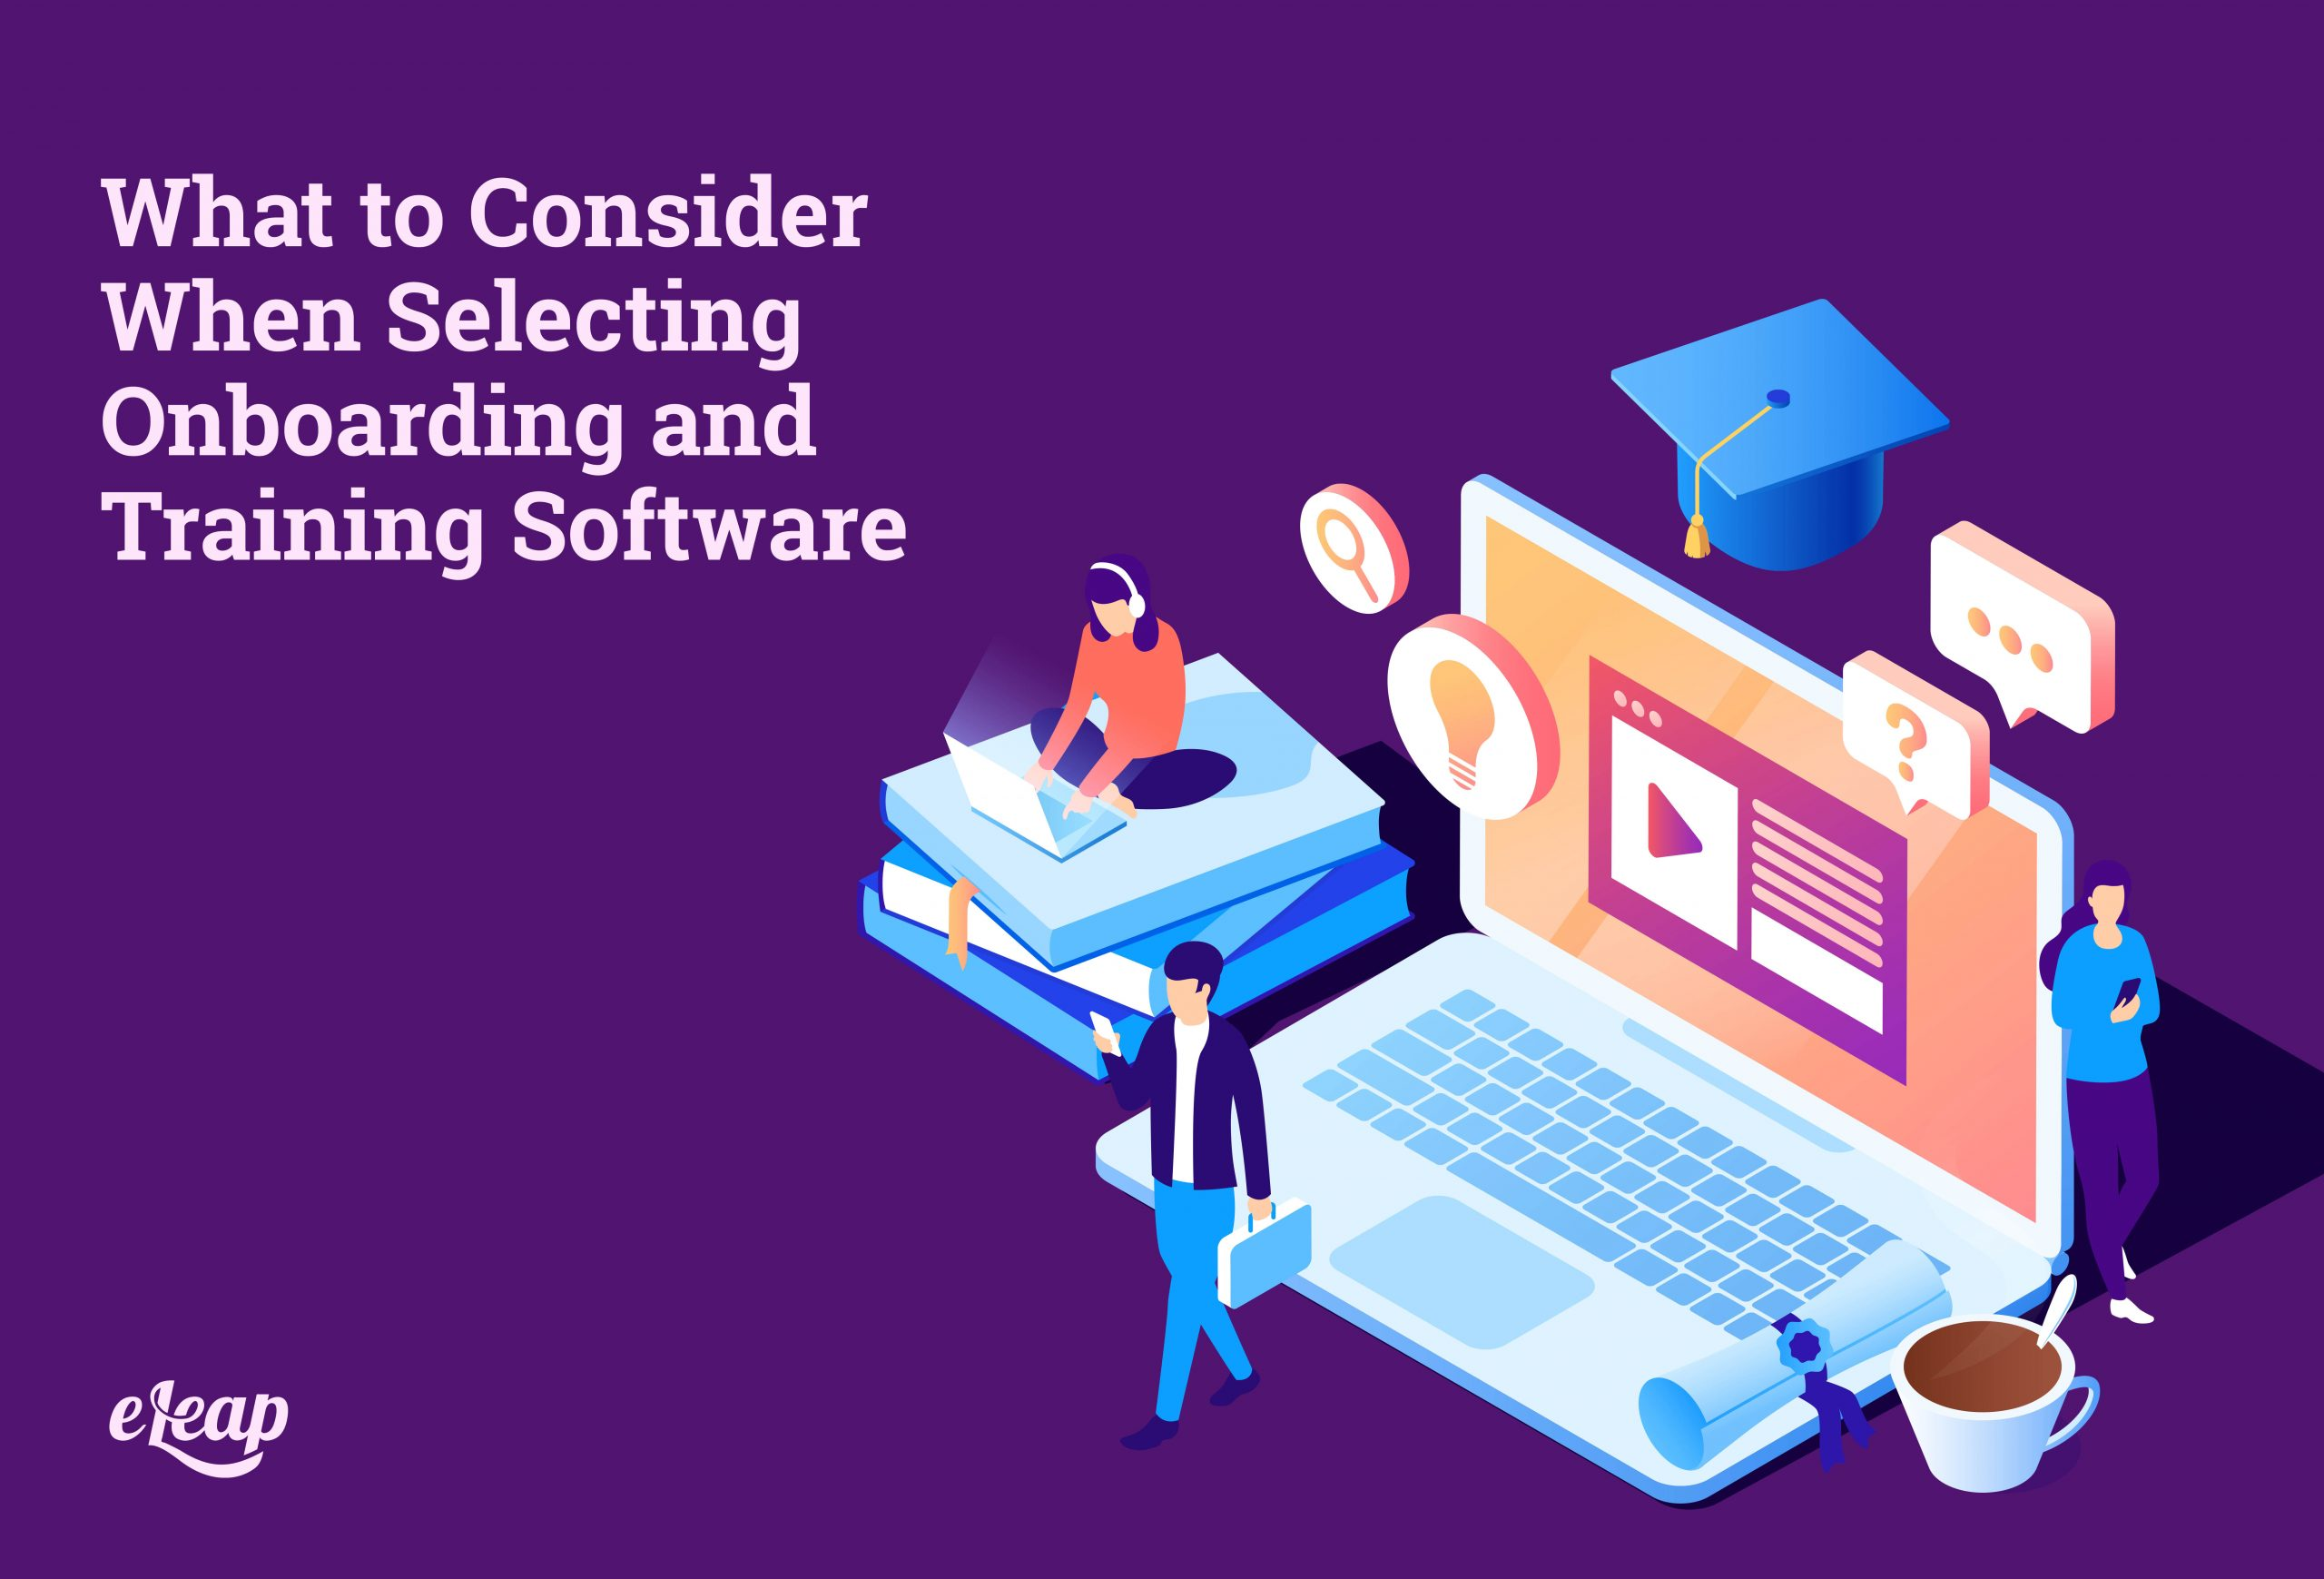 Selecting Onboarding and Training Software